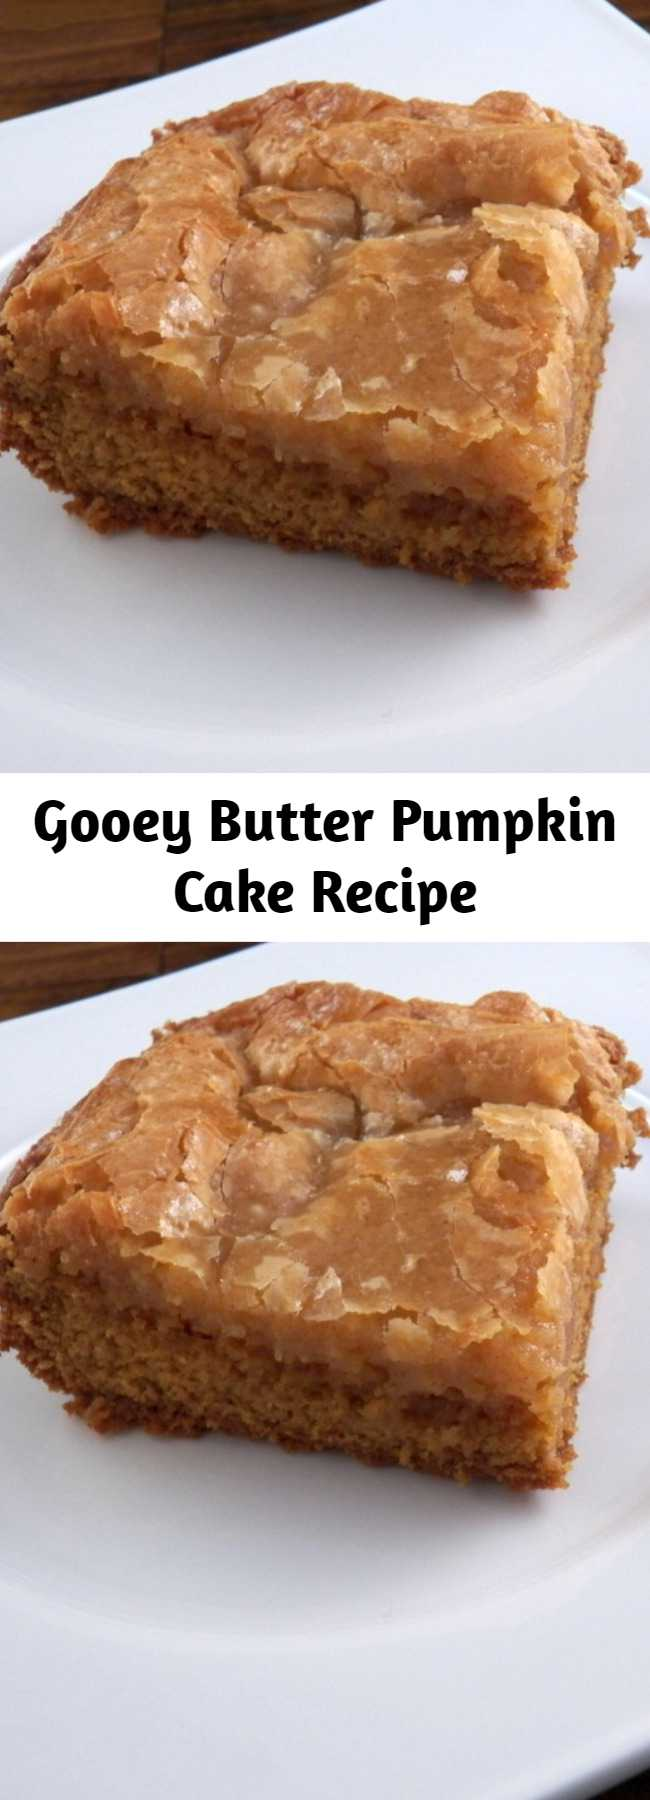 Gooey Butter Pumpkin Cake Recipe - This recipe comes together in minutes and then you just bake, cool and serve. How much easier can you get in life and on top of that it is so unbelievably good that it will definitely impress your friends and family.